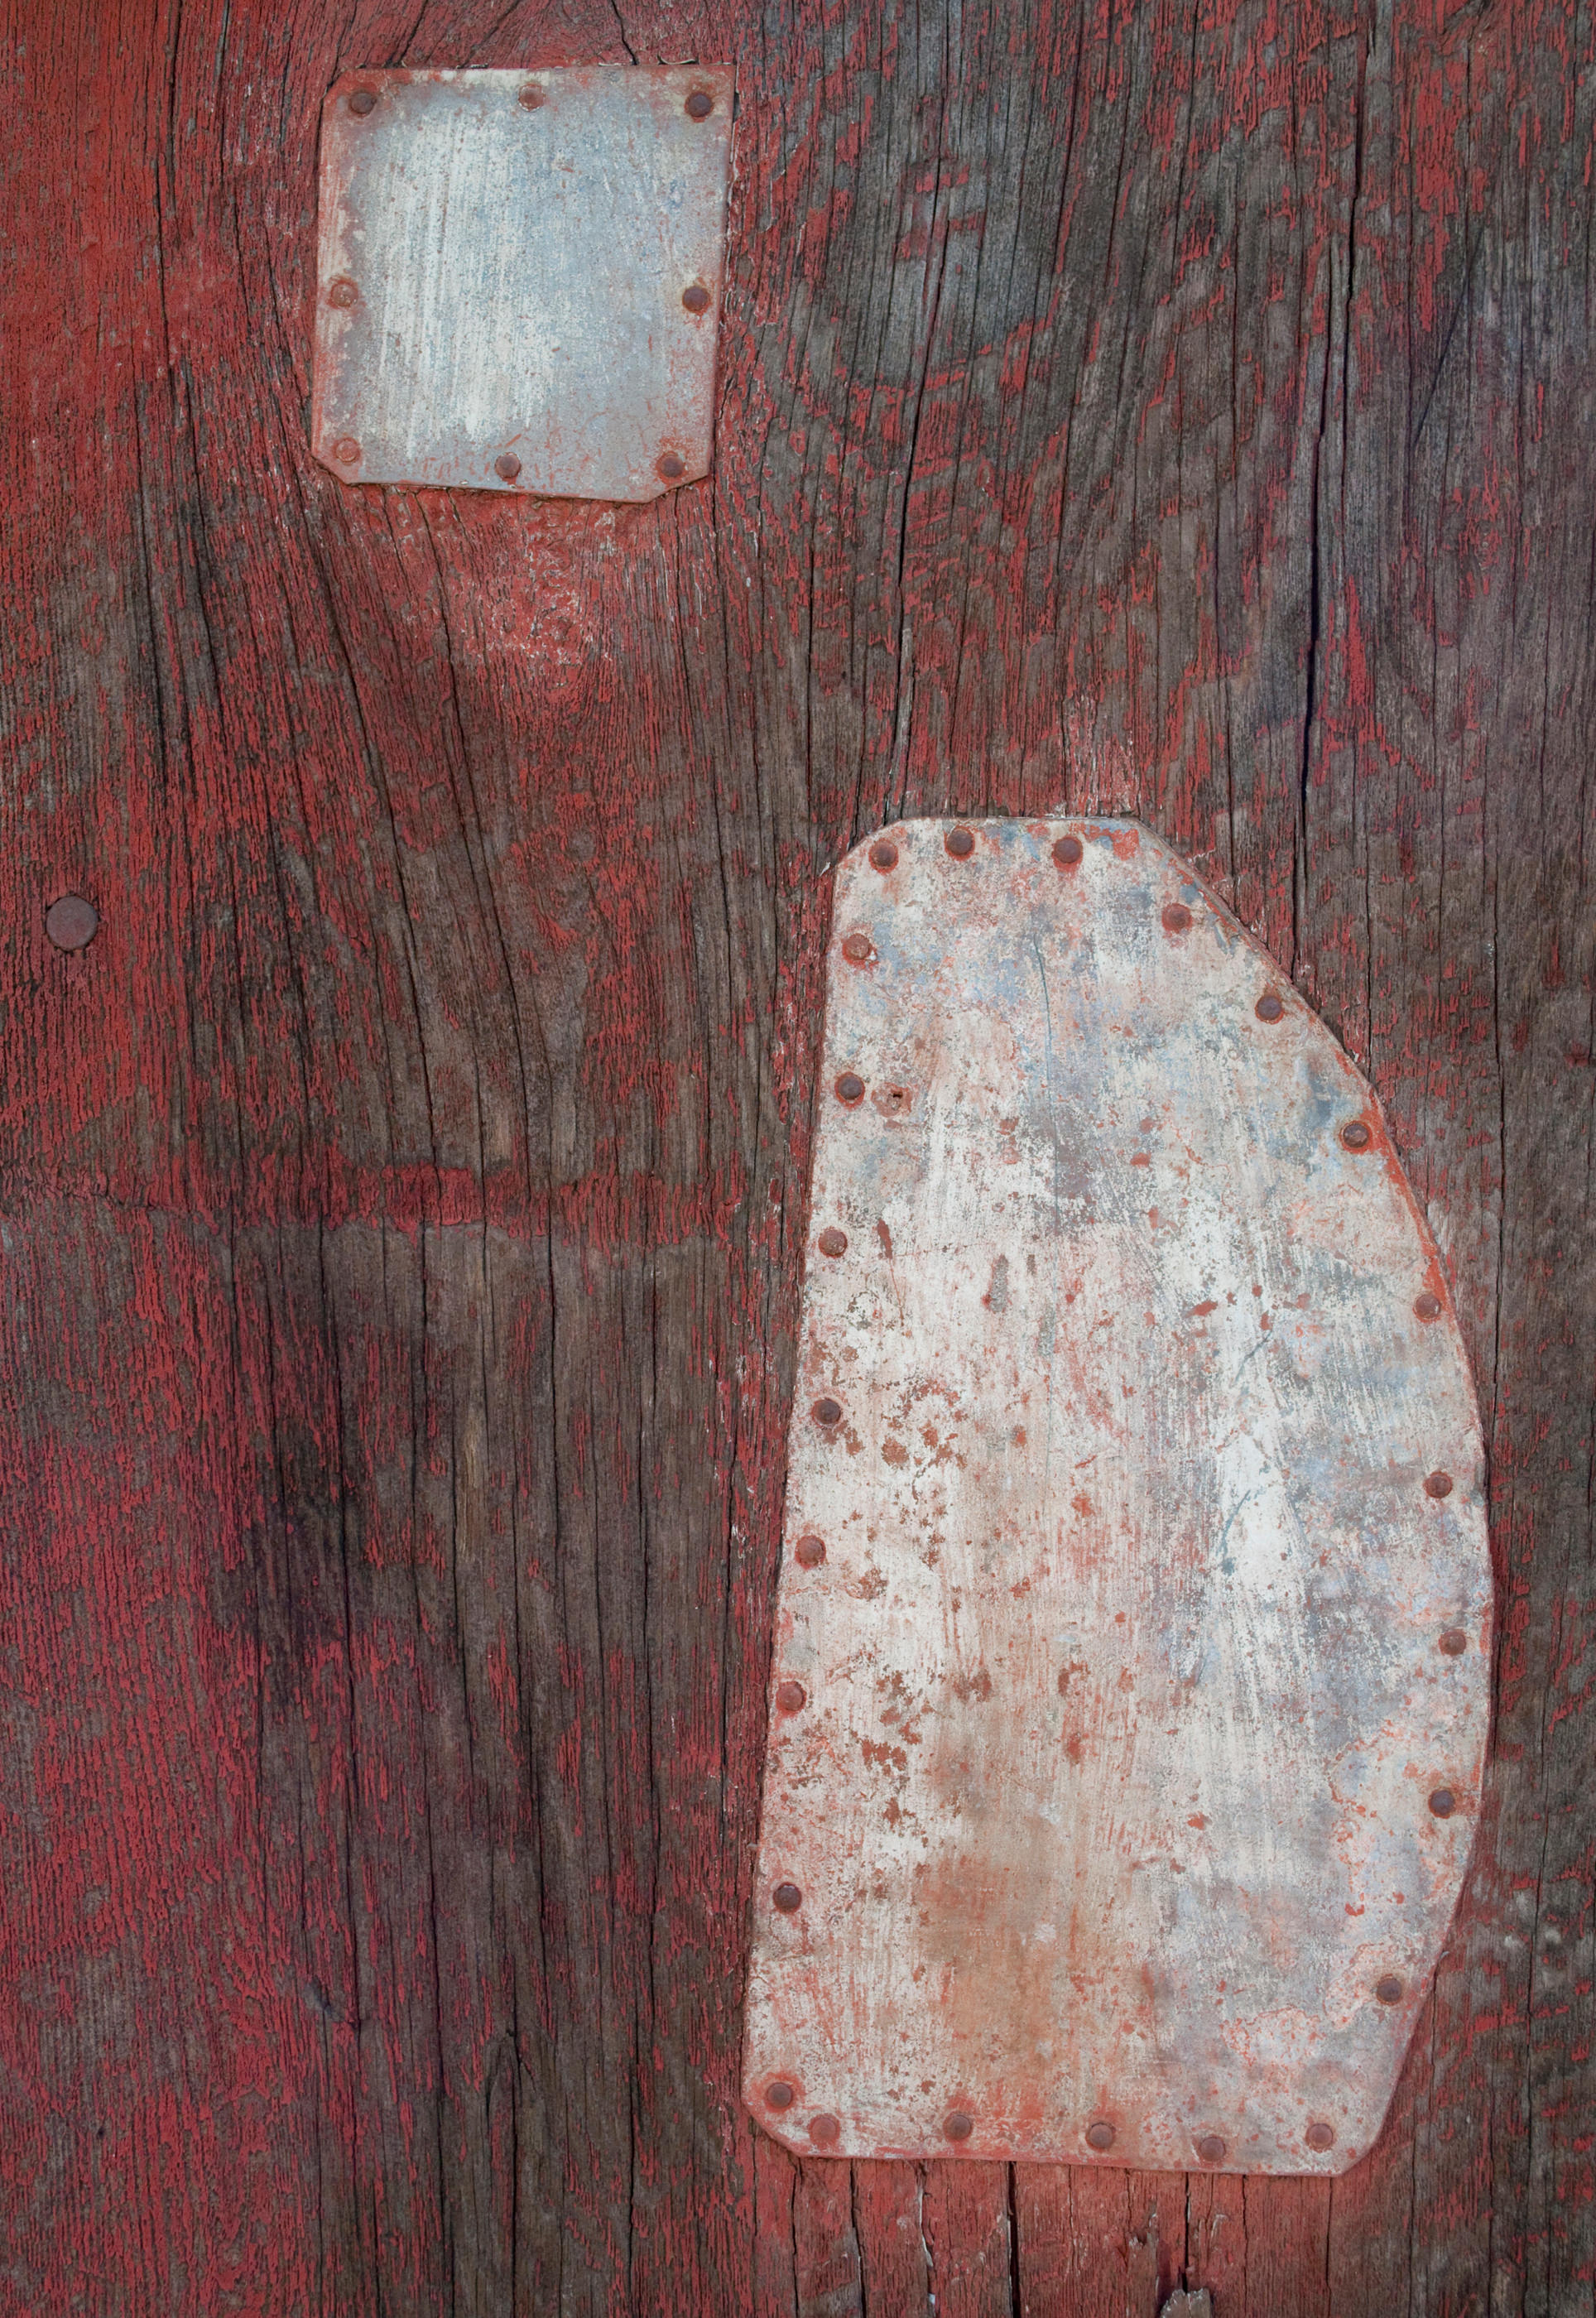 35 Distressed Wood Textures Photoshop Textures Patterns